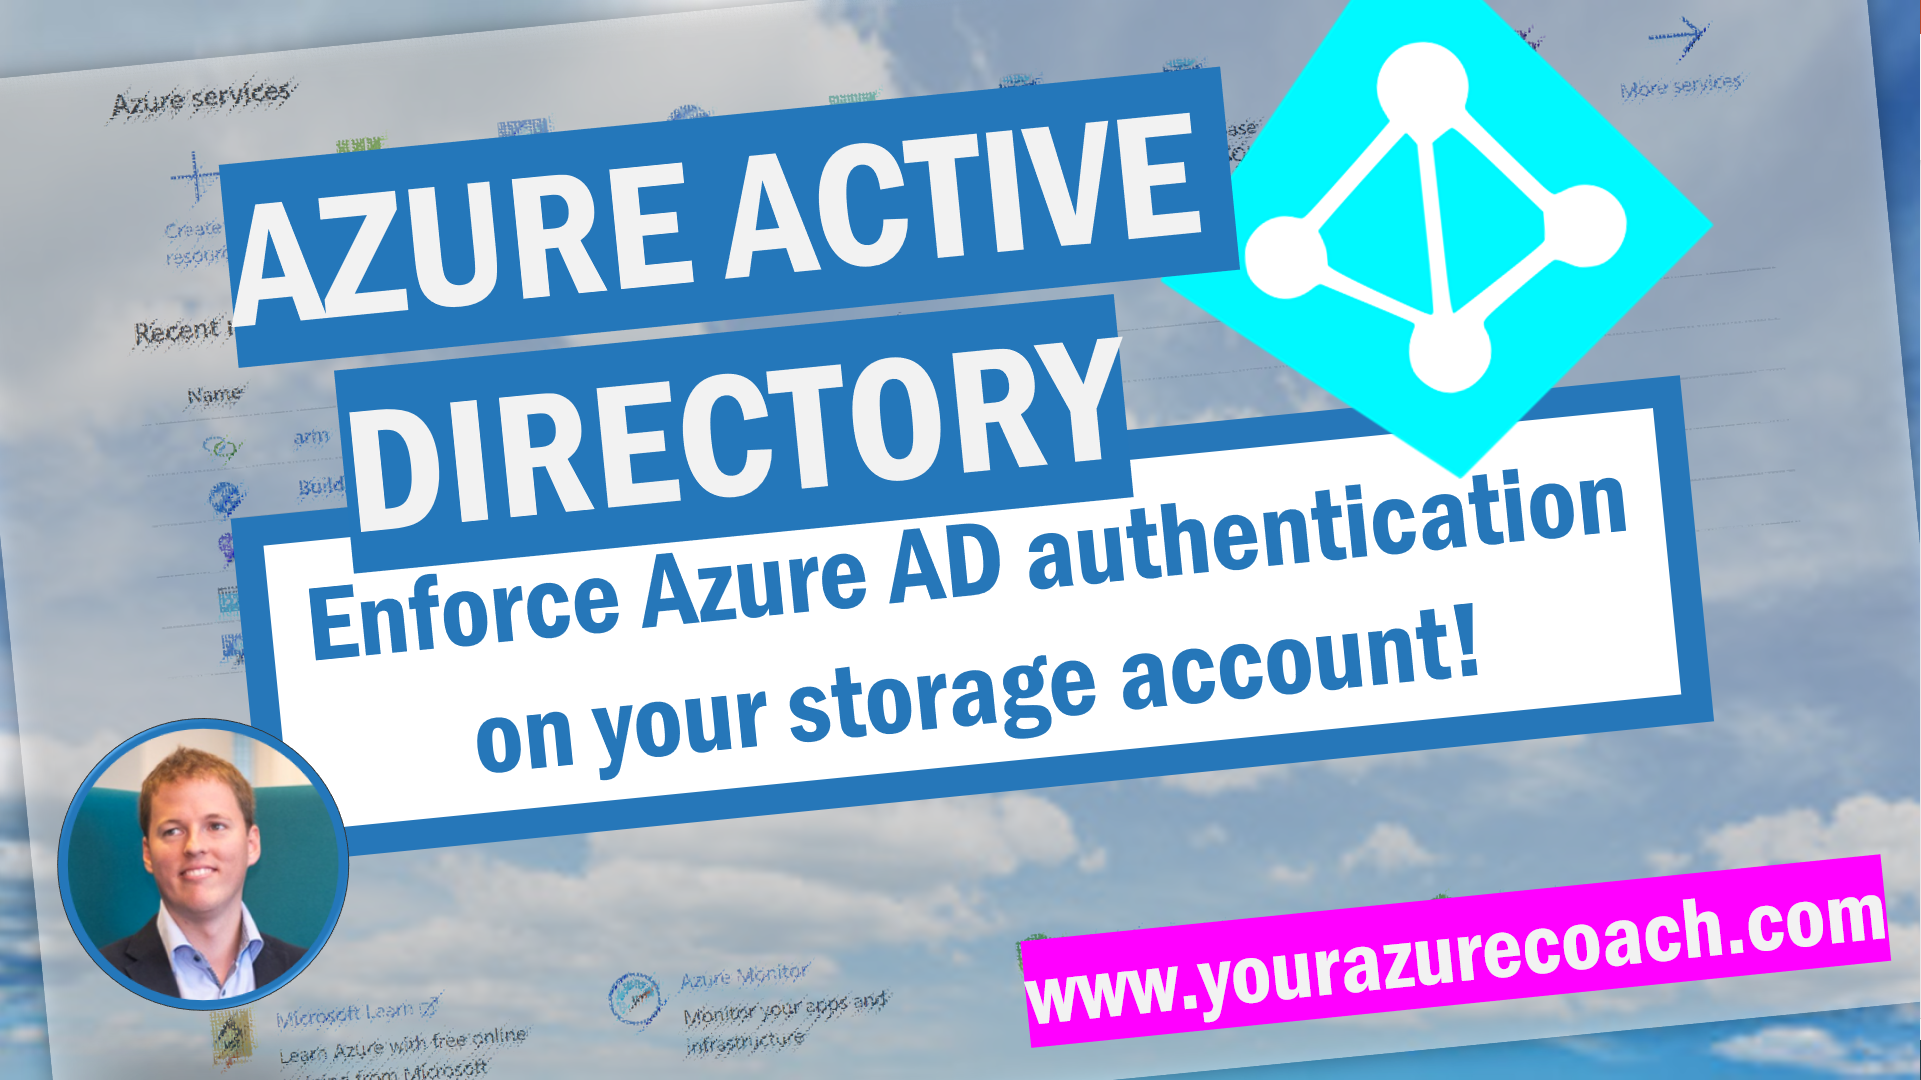 Enforce Azure AD authentication on your storage account!